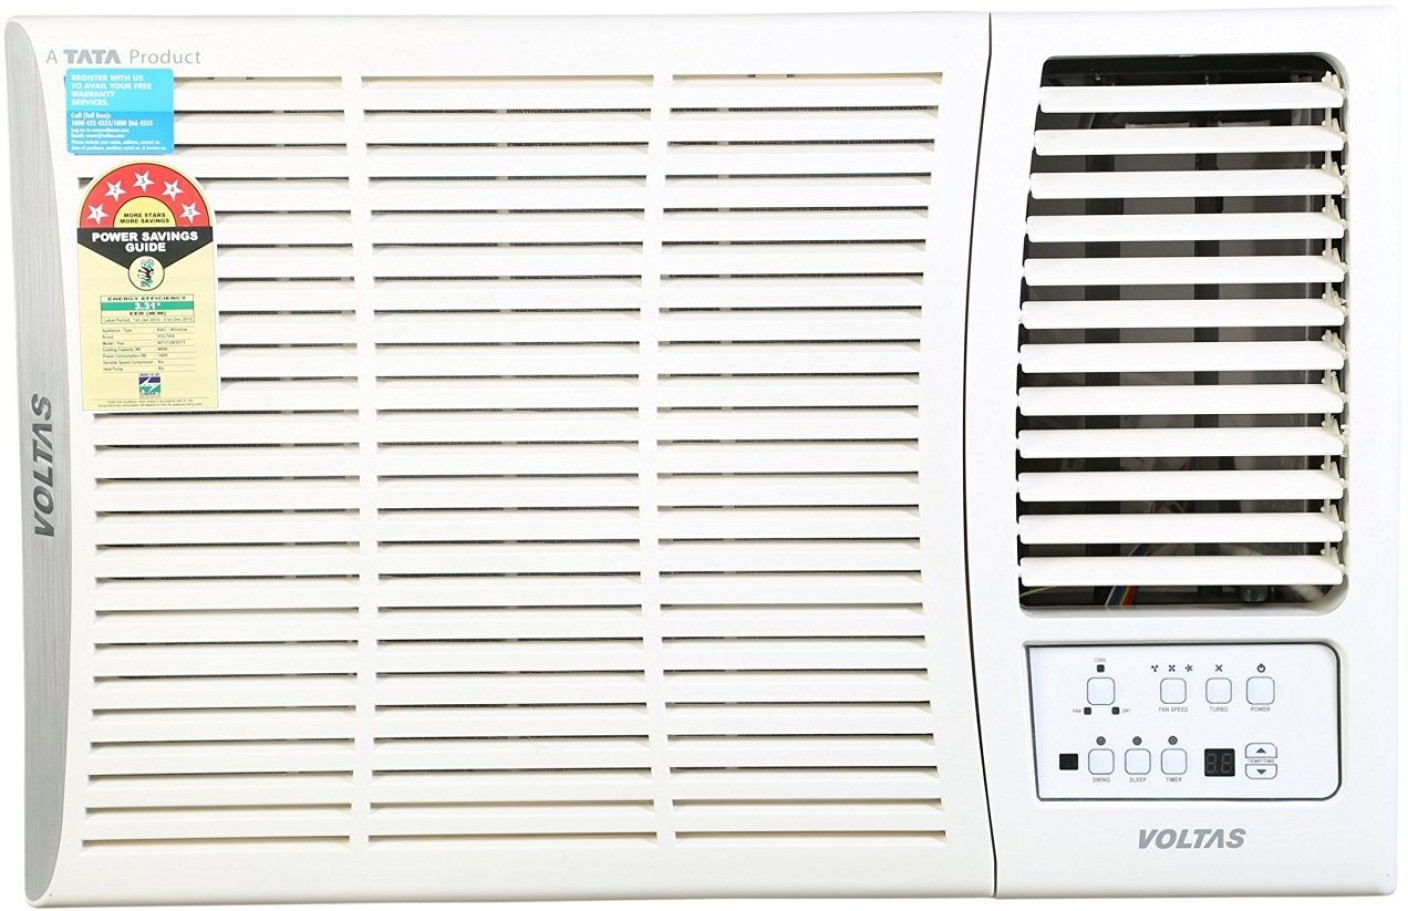 Buy voltas 1 5 ton 5 star bee rating 2017 for 1 5 ton window ac price india